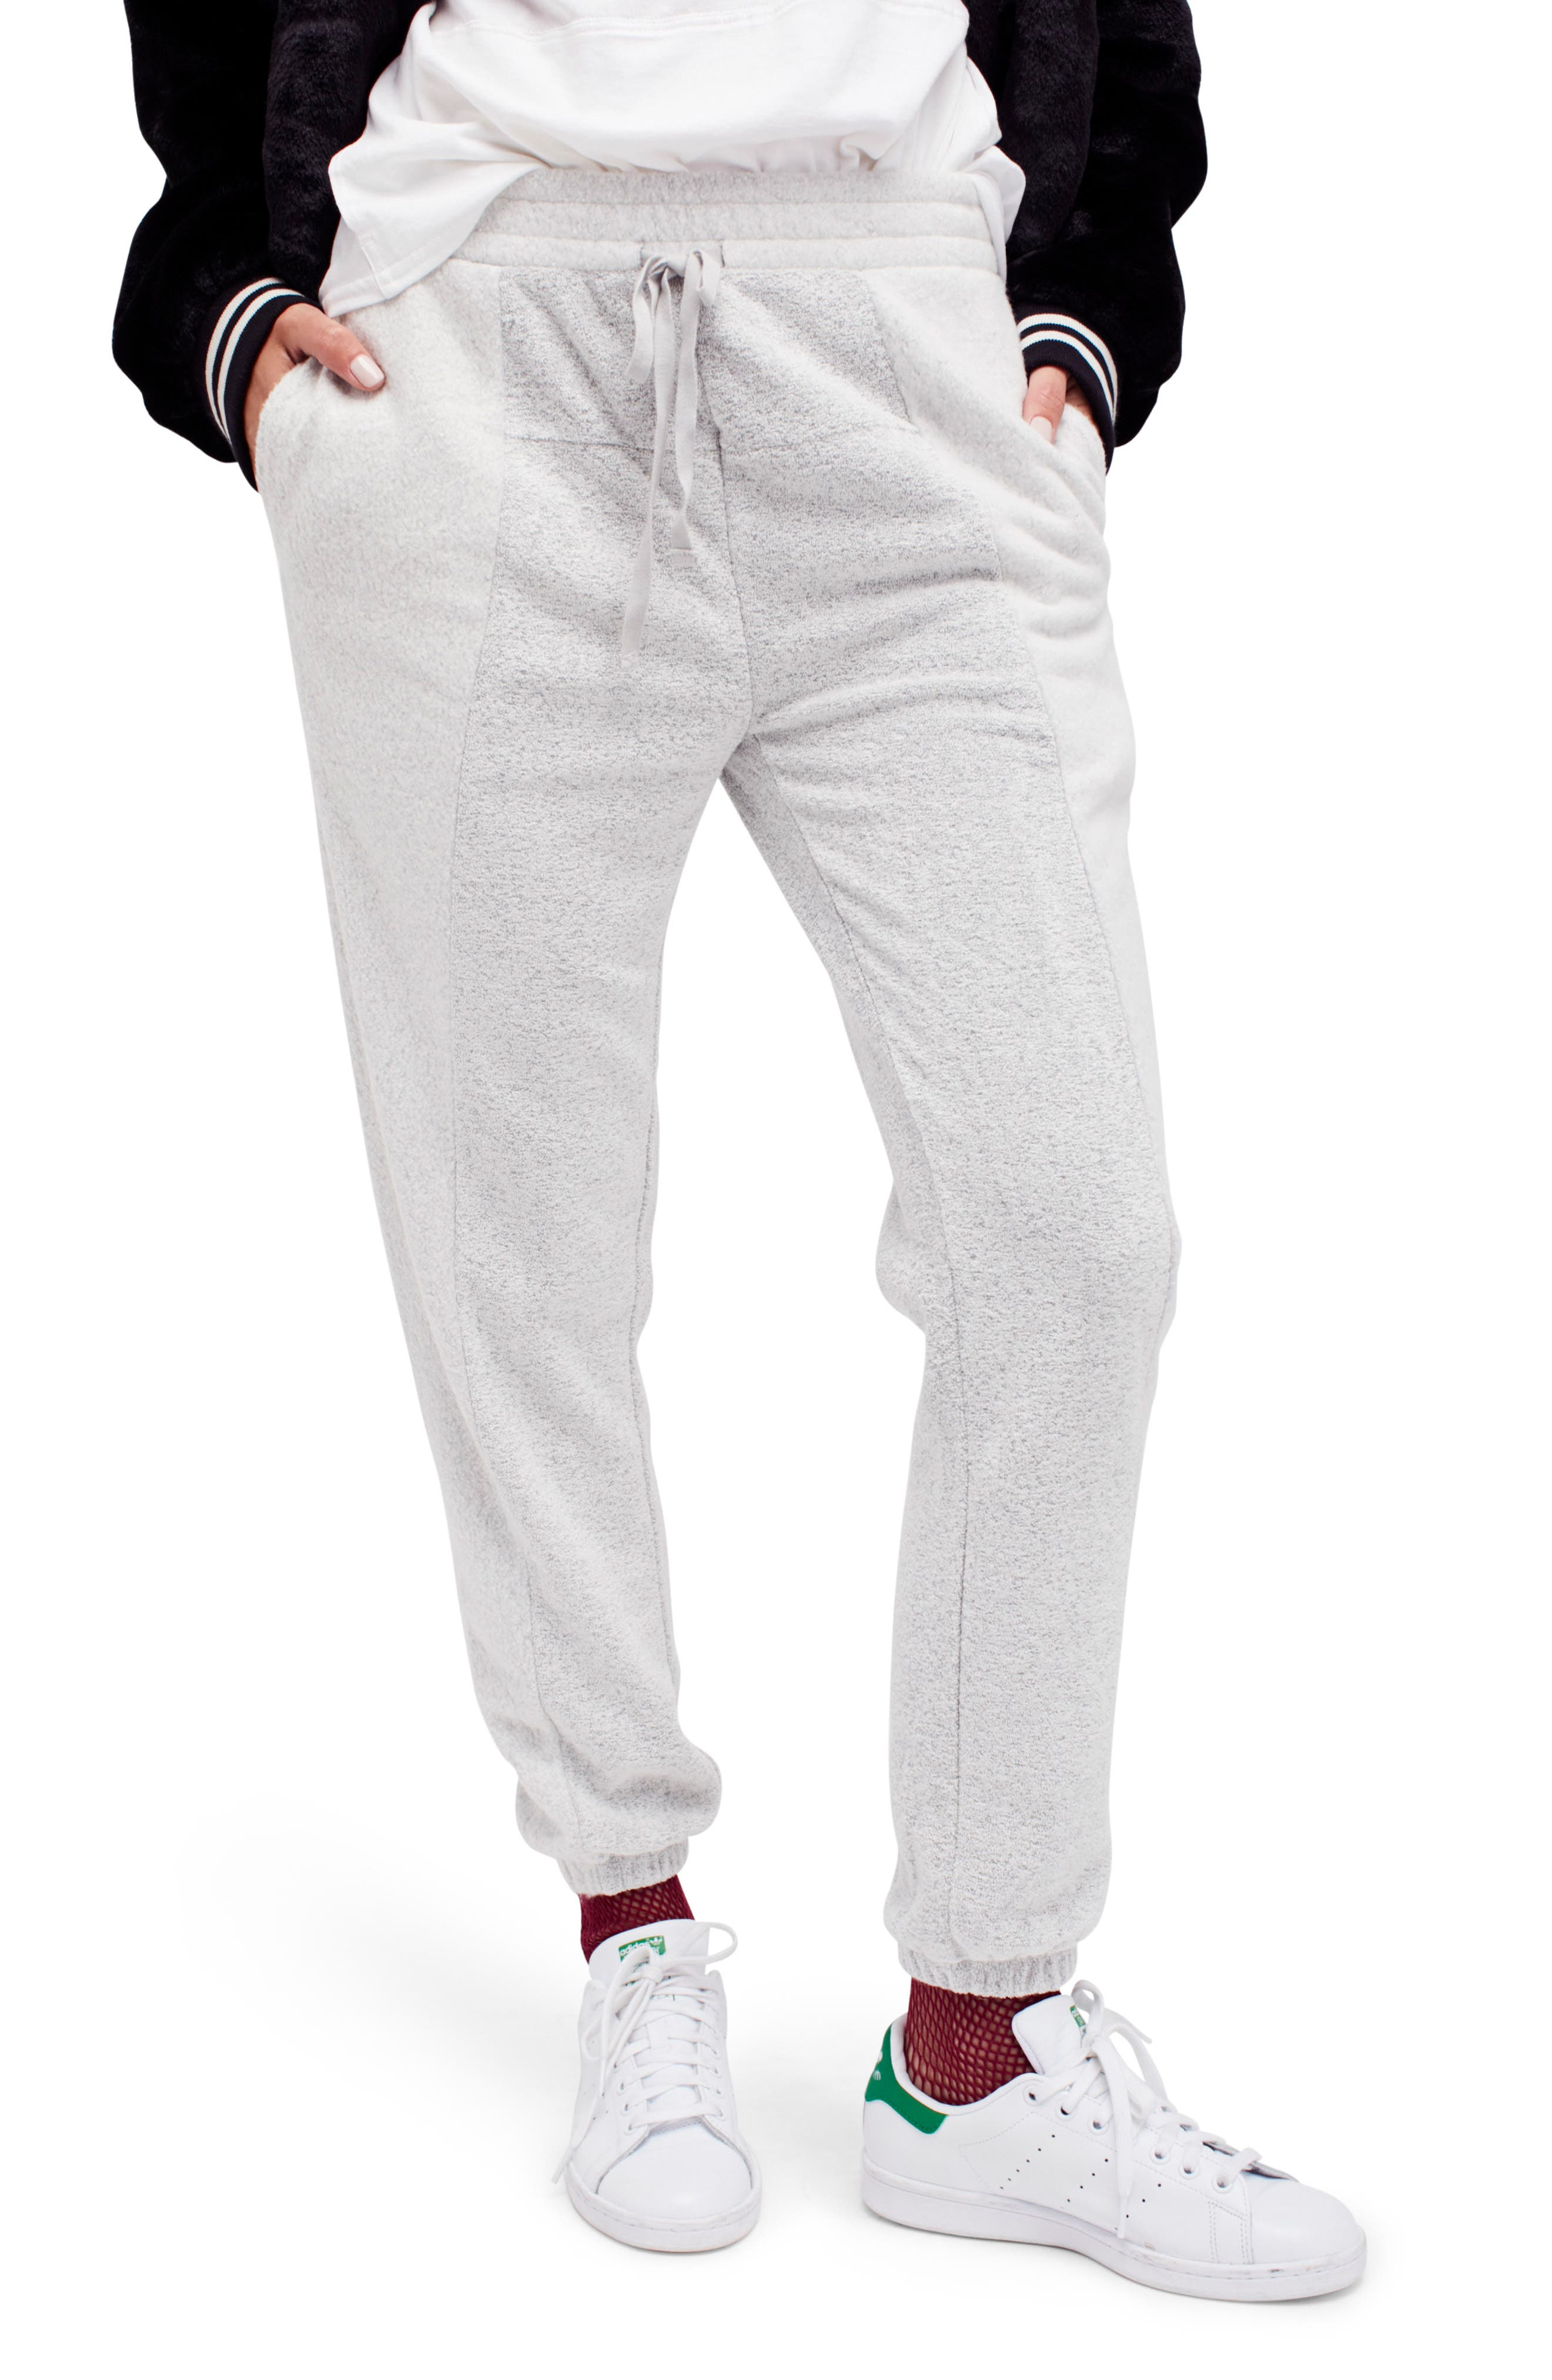 All Day All Night Jogger Pants,                         Main,                         color, Grey